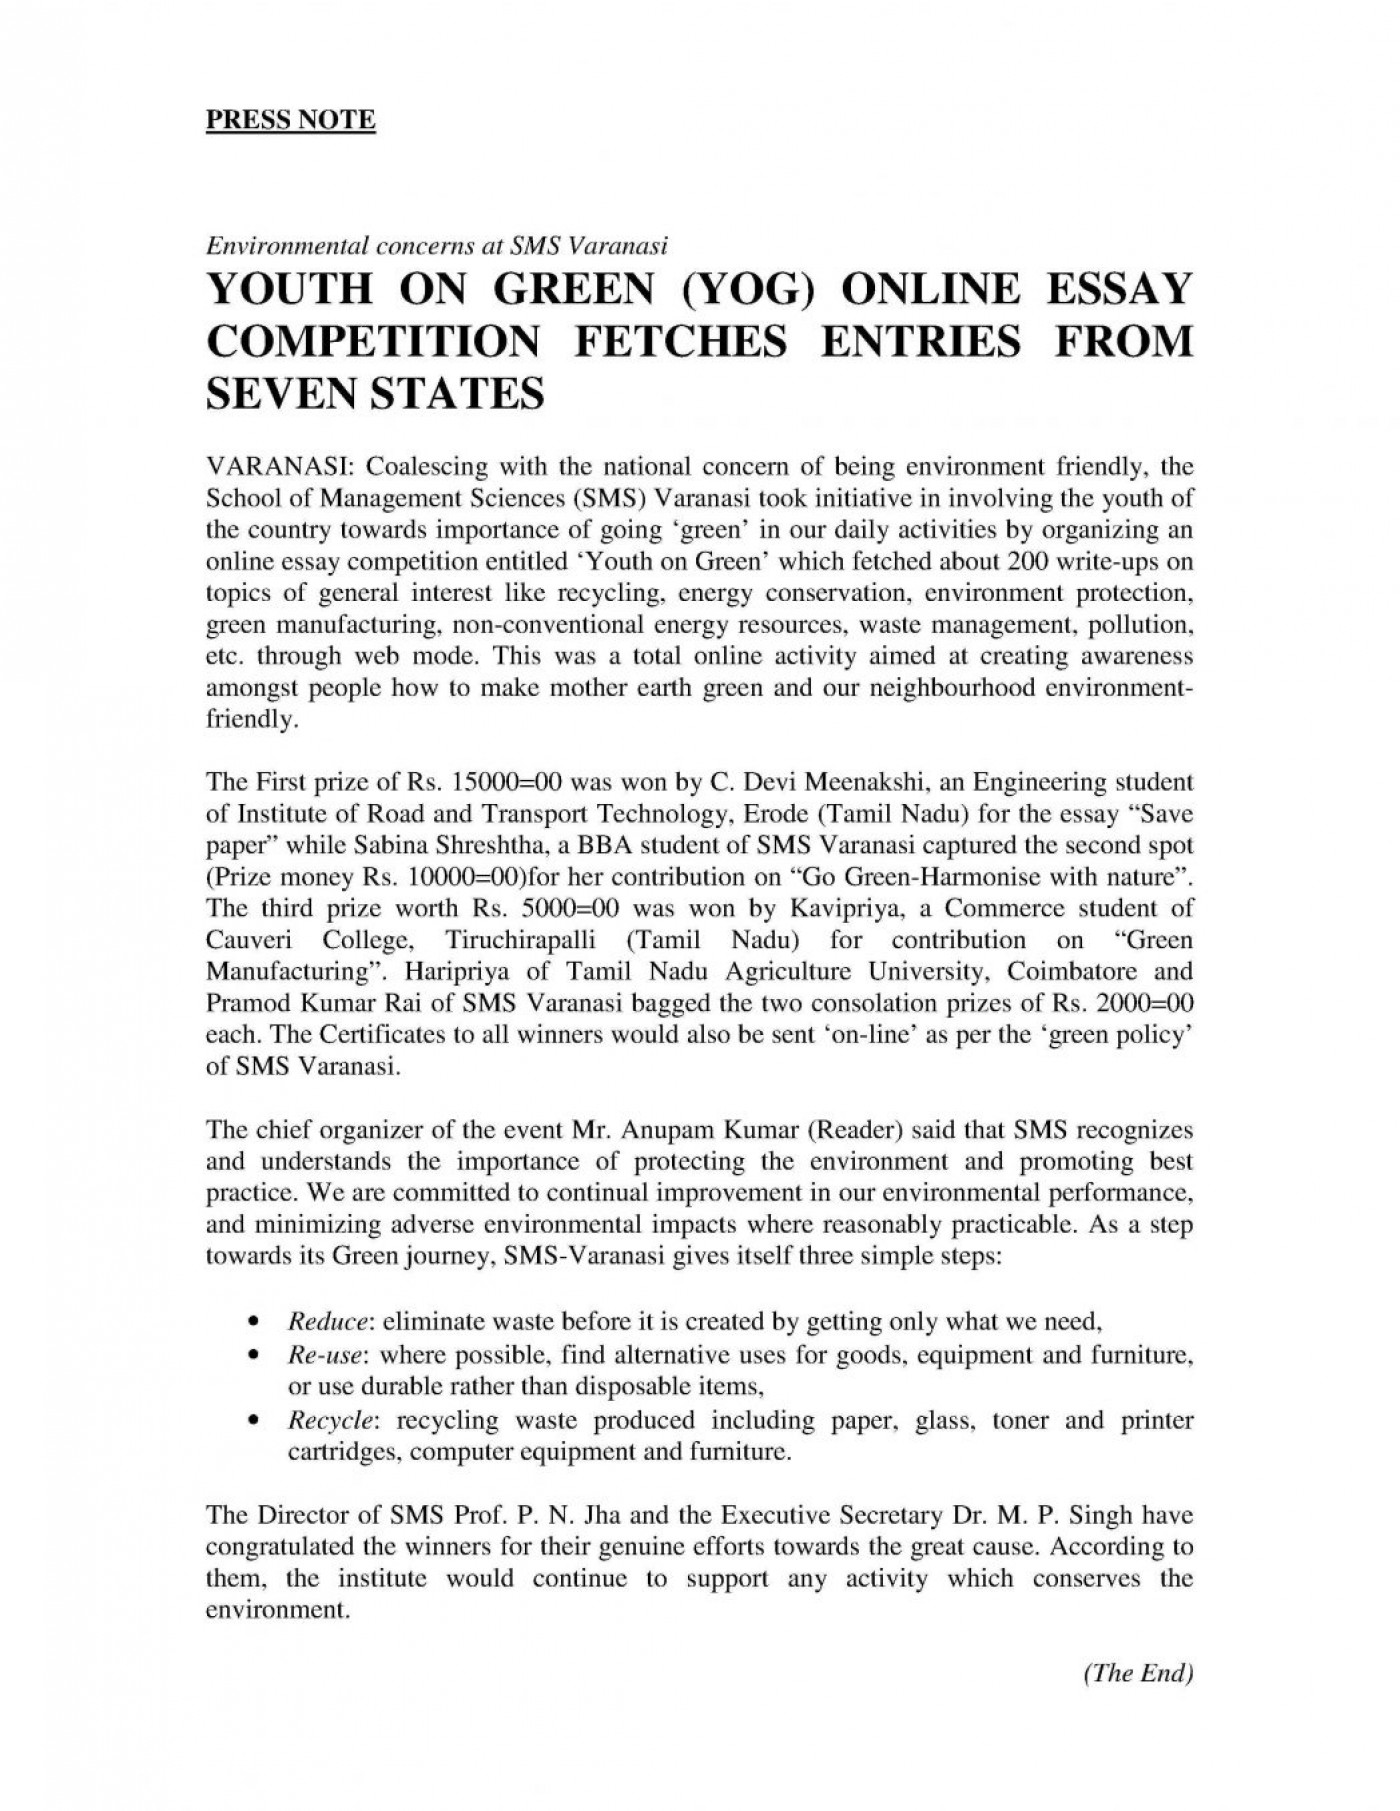 020 Best Essays For College Essay On Good Habits How Tot Application Online Yog Press Re About Yourself Examples Your Background Failure Prompt Off Hook 1048x1356 Example Amazing To Start An Ways With A Question Introduction Quote Apa 1400